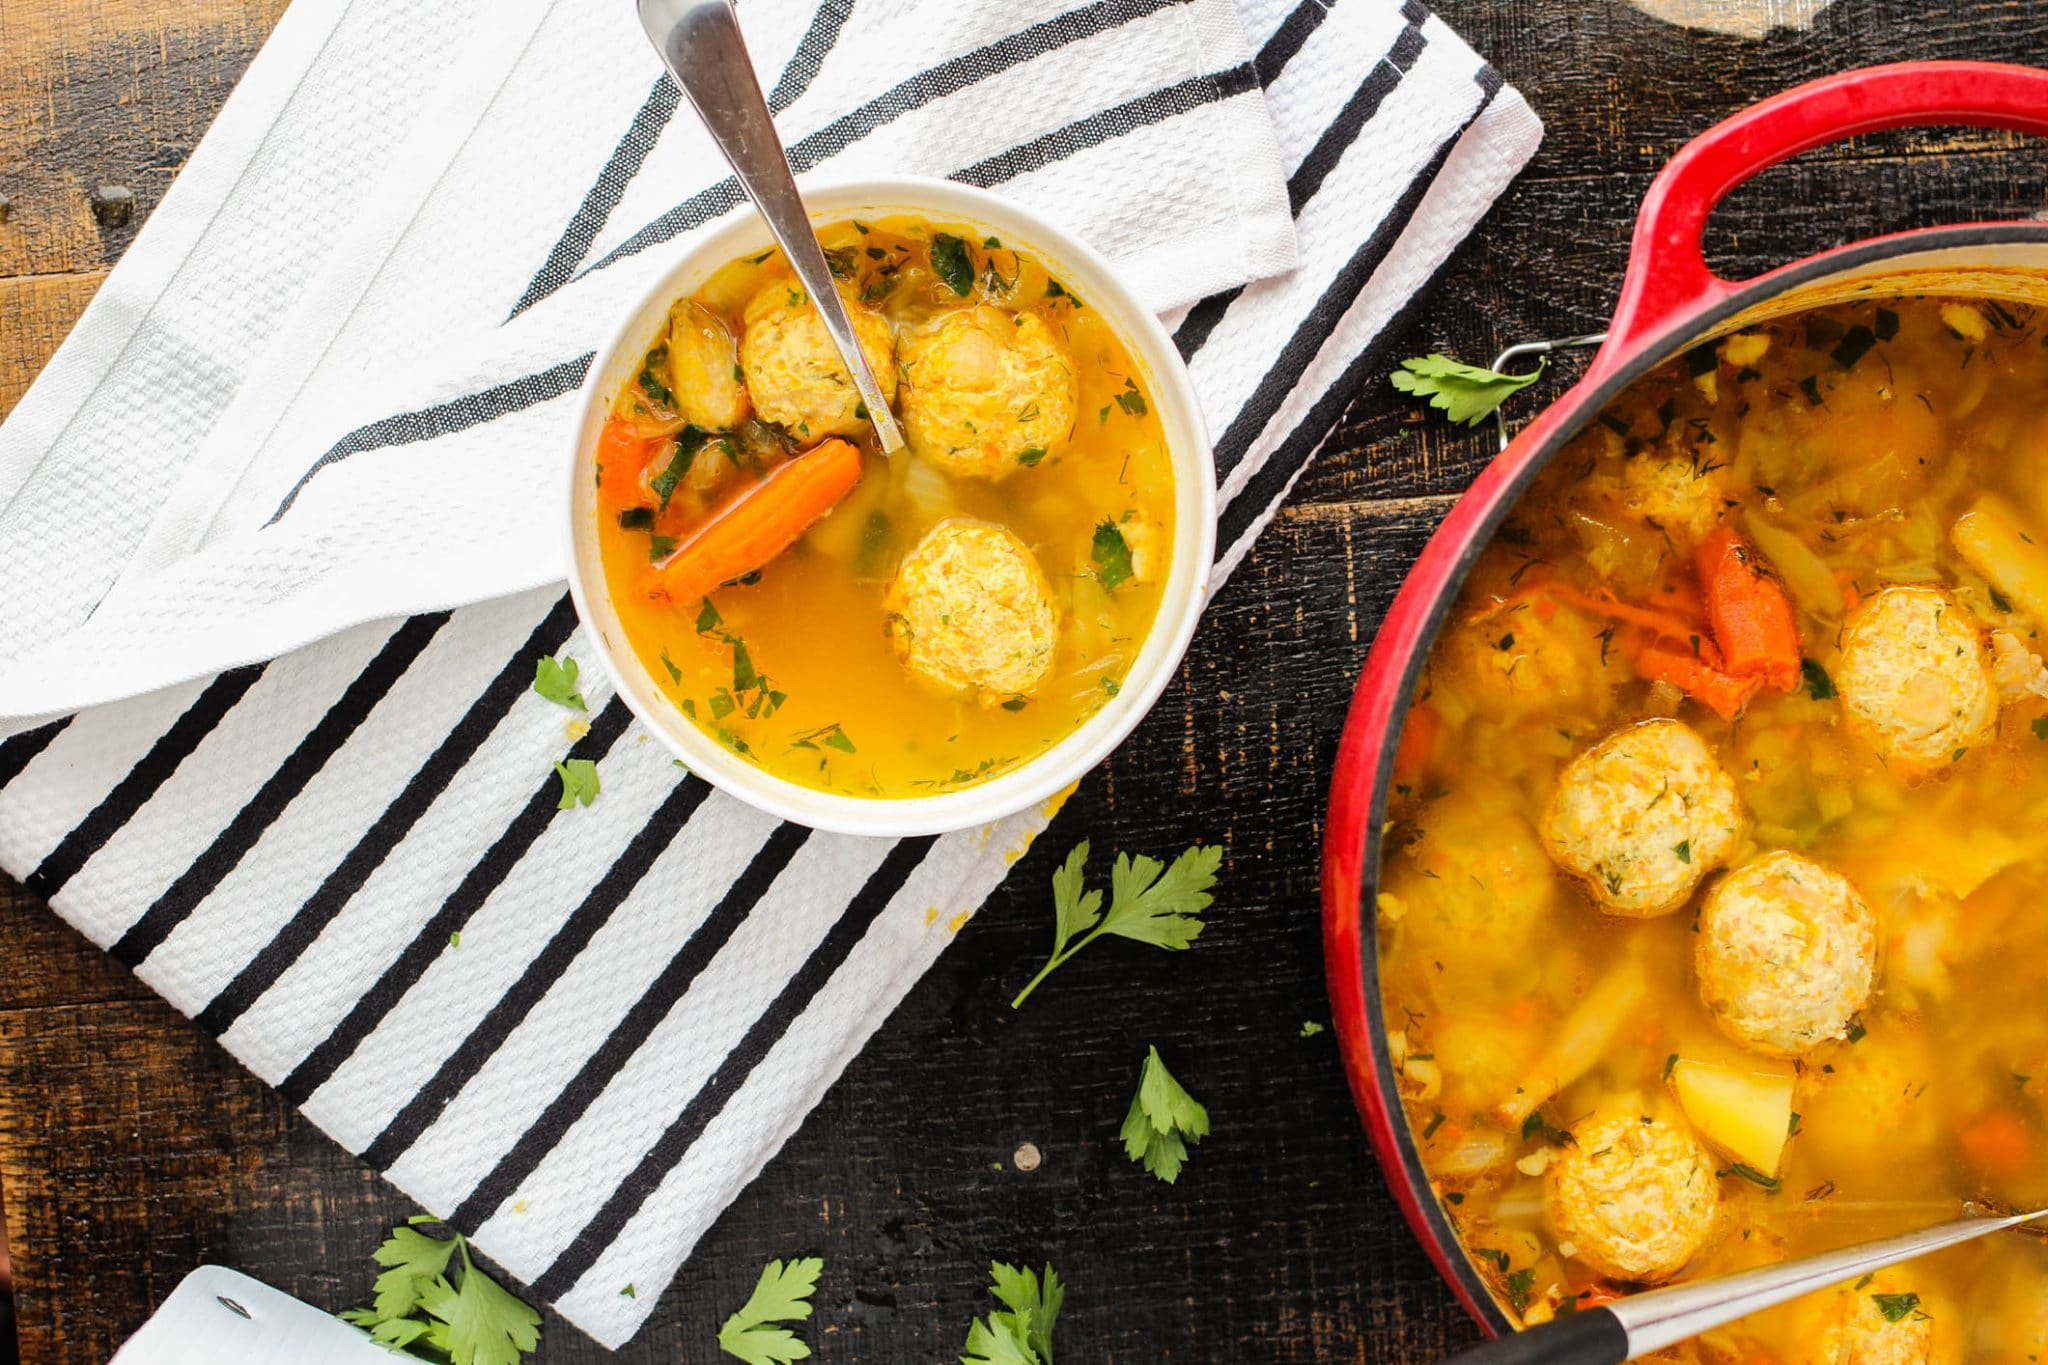 My Russian Meatball Soup is loaded with beautiful and tender chicken meatballs floating in a warm and comforting broth. It's an ultimate sniffle soother!